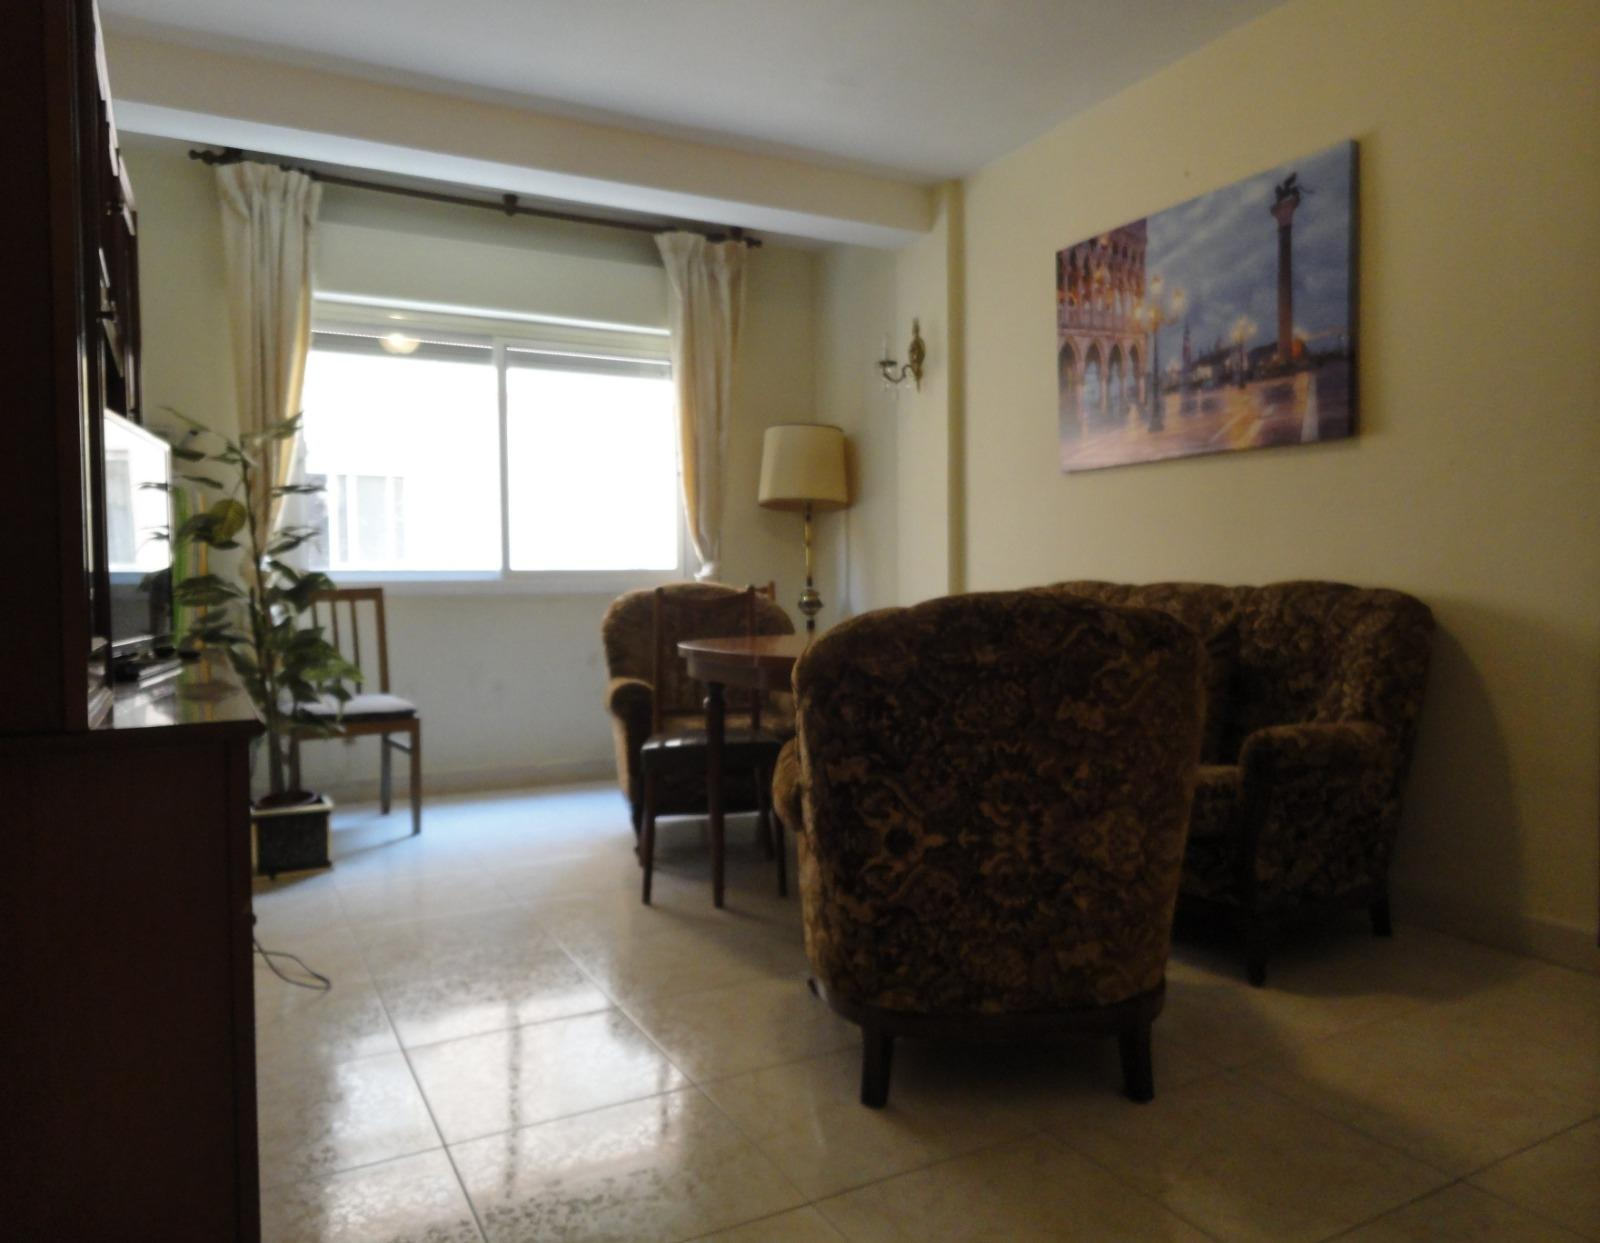 Flat for sale in Plaza de Toros-Doctores-San Lázaro (Granada), 140.000 €